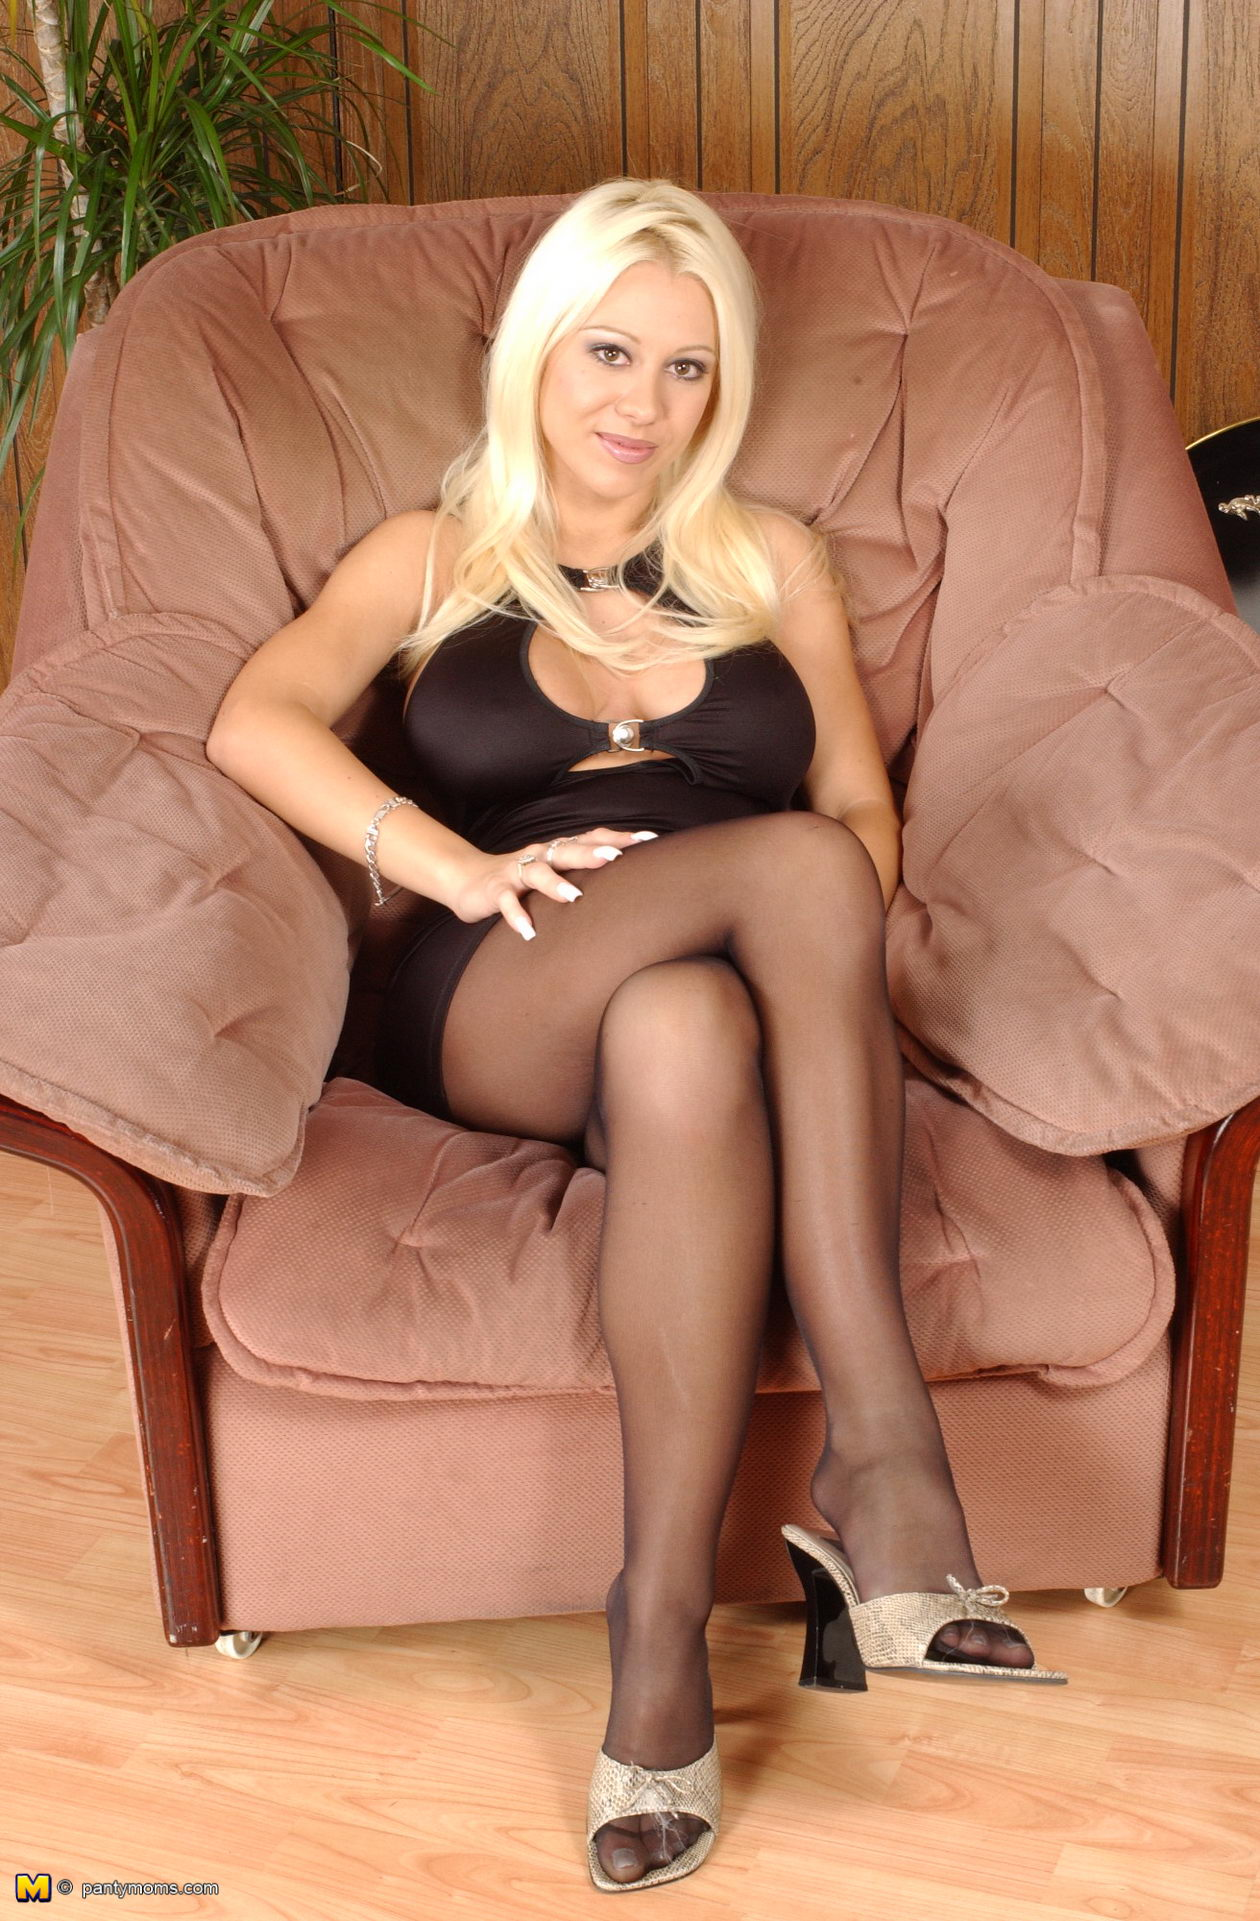 super-stacked blonde mature bombshell opens legs in sheer black